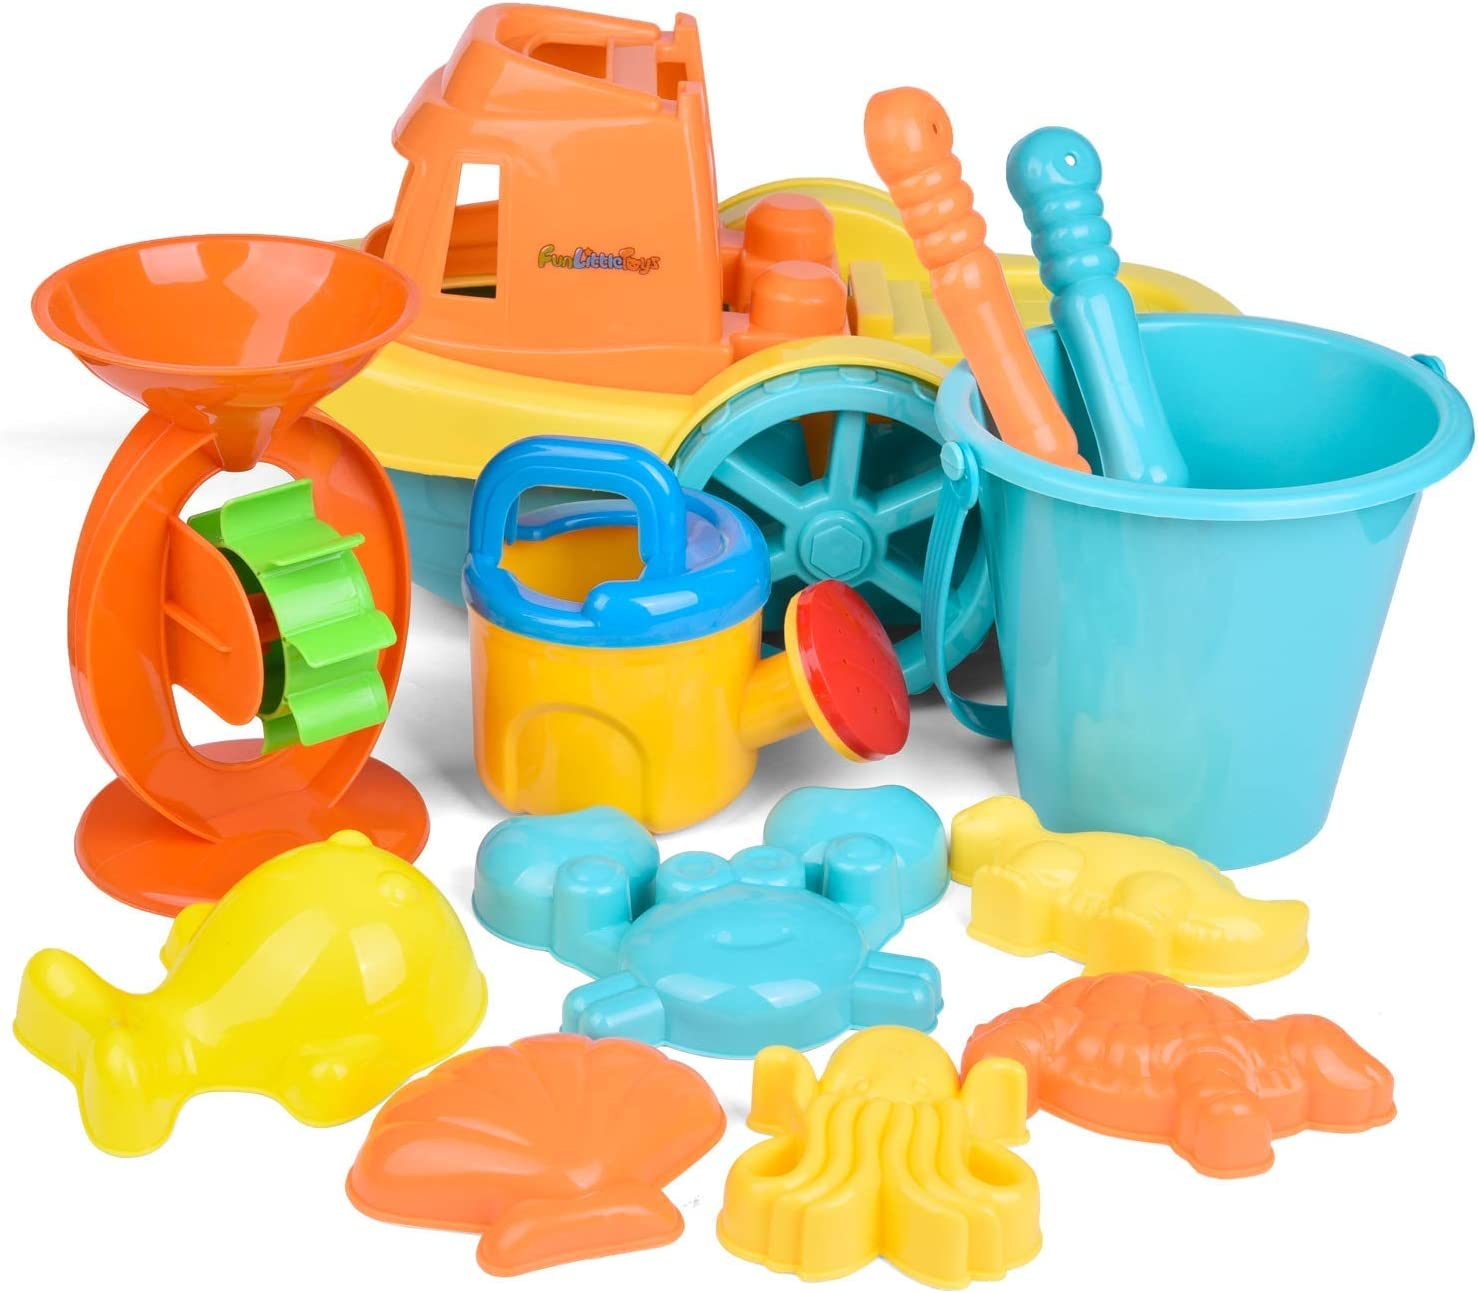 Summer Fun Sand Toys and Sandbox Toys FUN LITTLE TOYS Beach Toys for Kids Set 20 Pieces Outdoor Toys for Kids